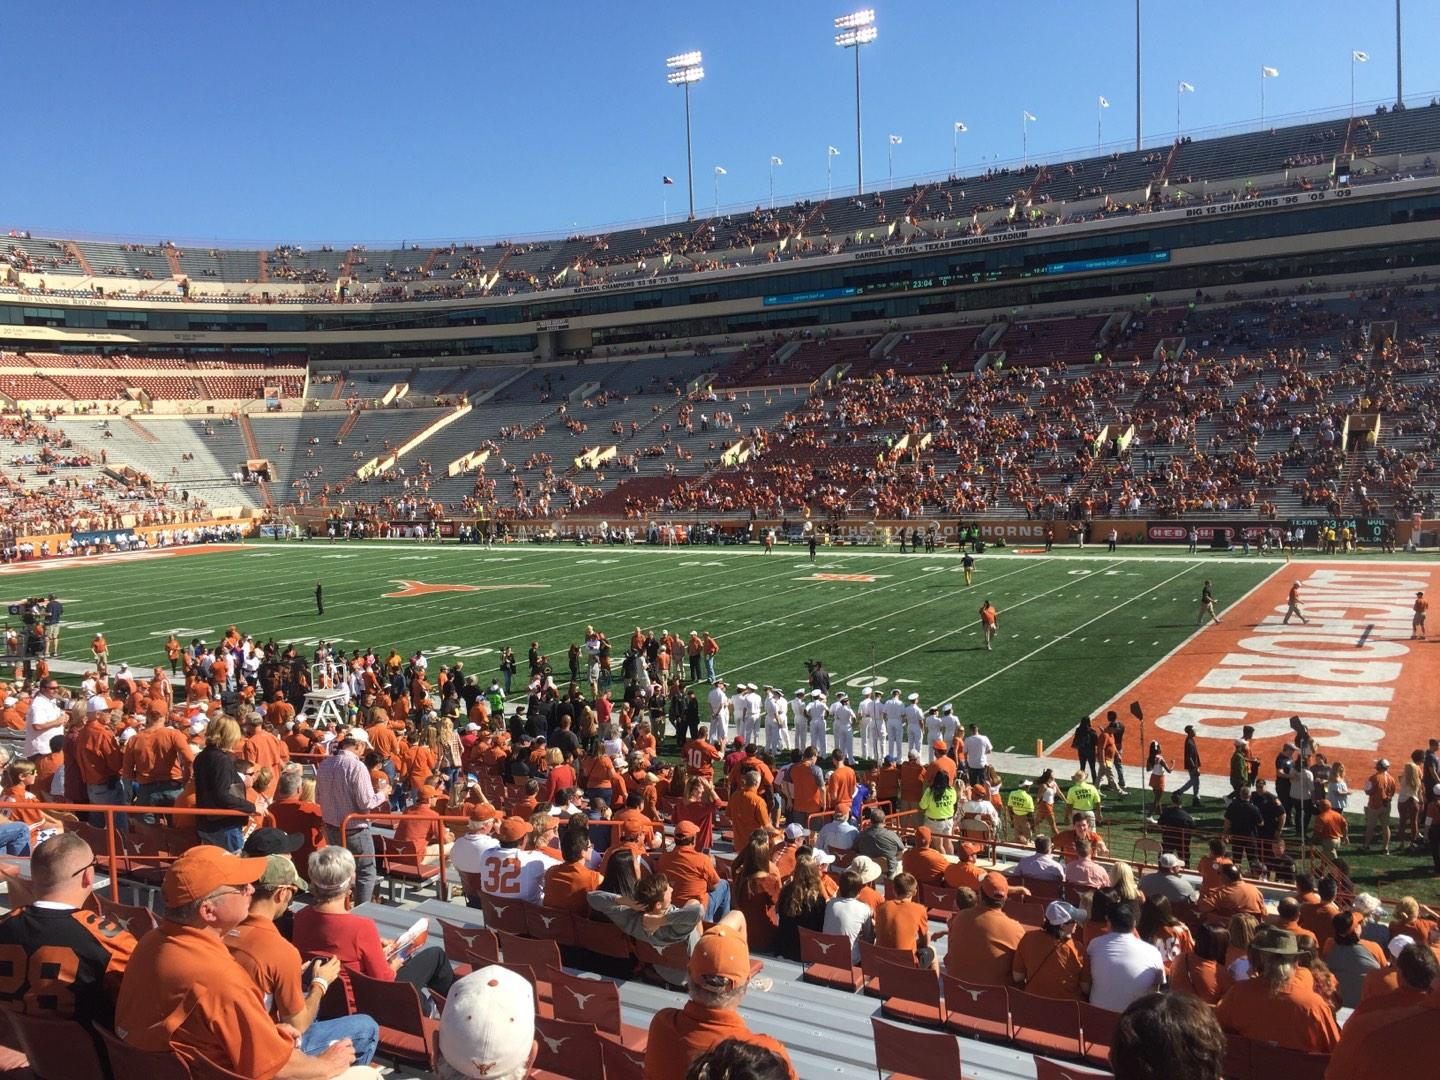 Texas Memorial Stadium Section 2 Row 28 Seat 1